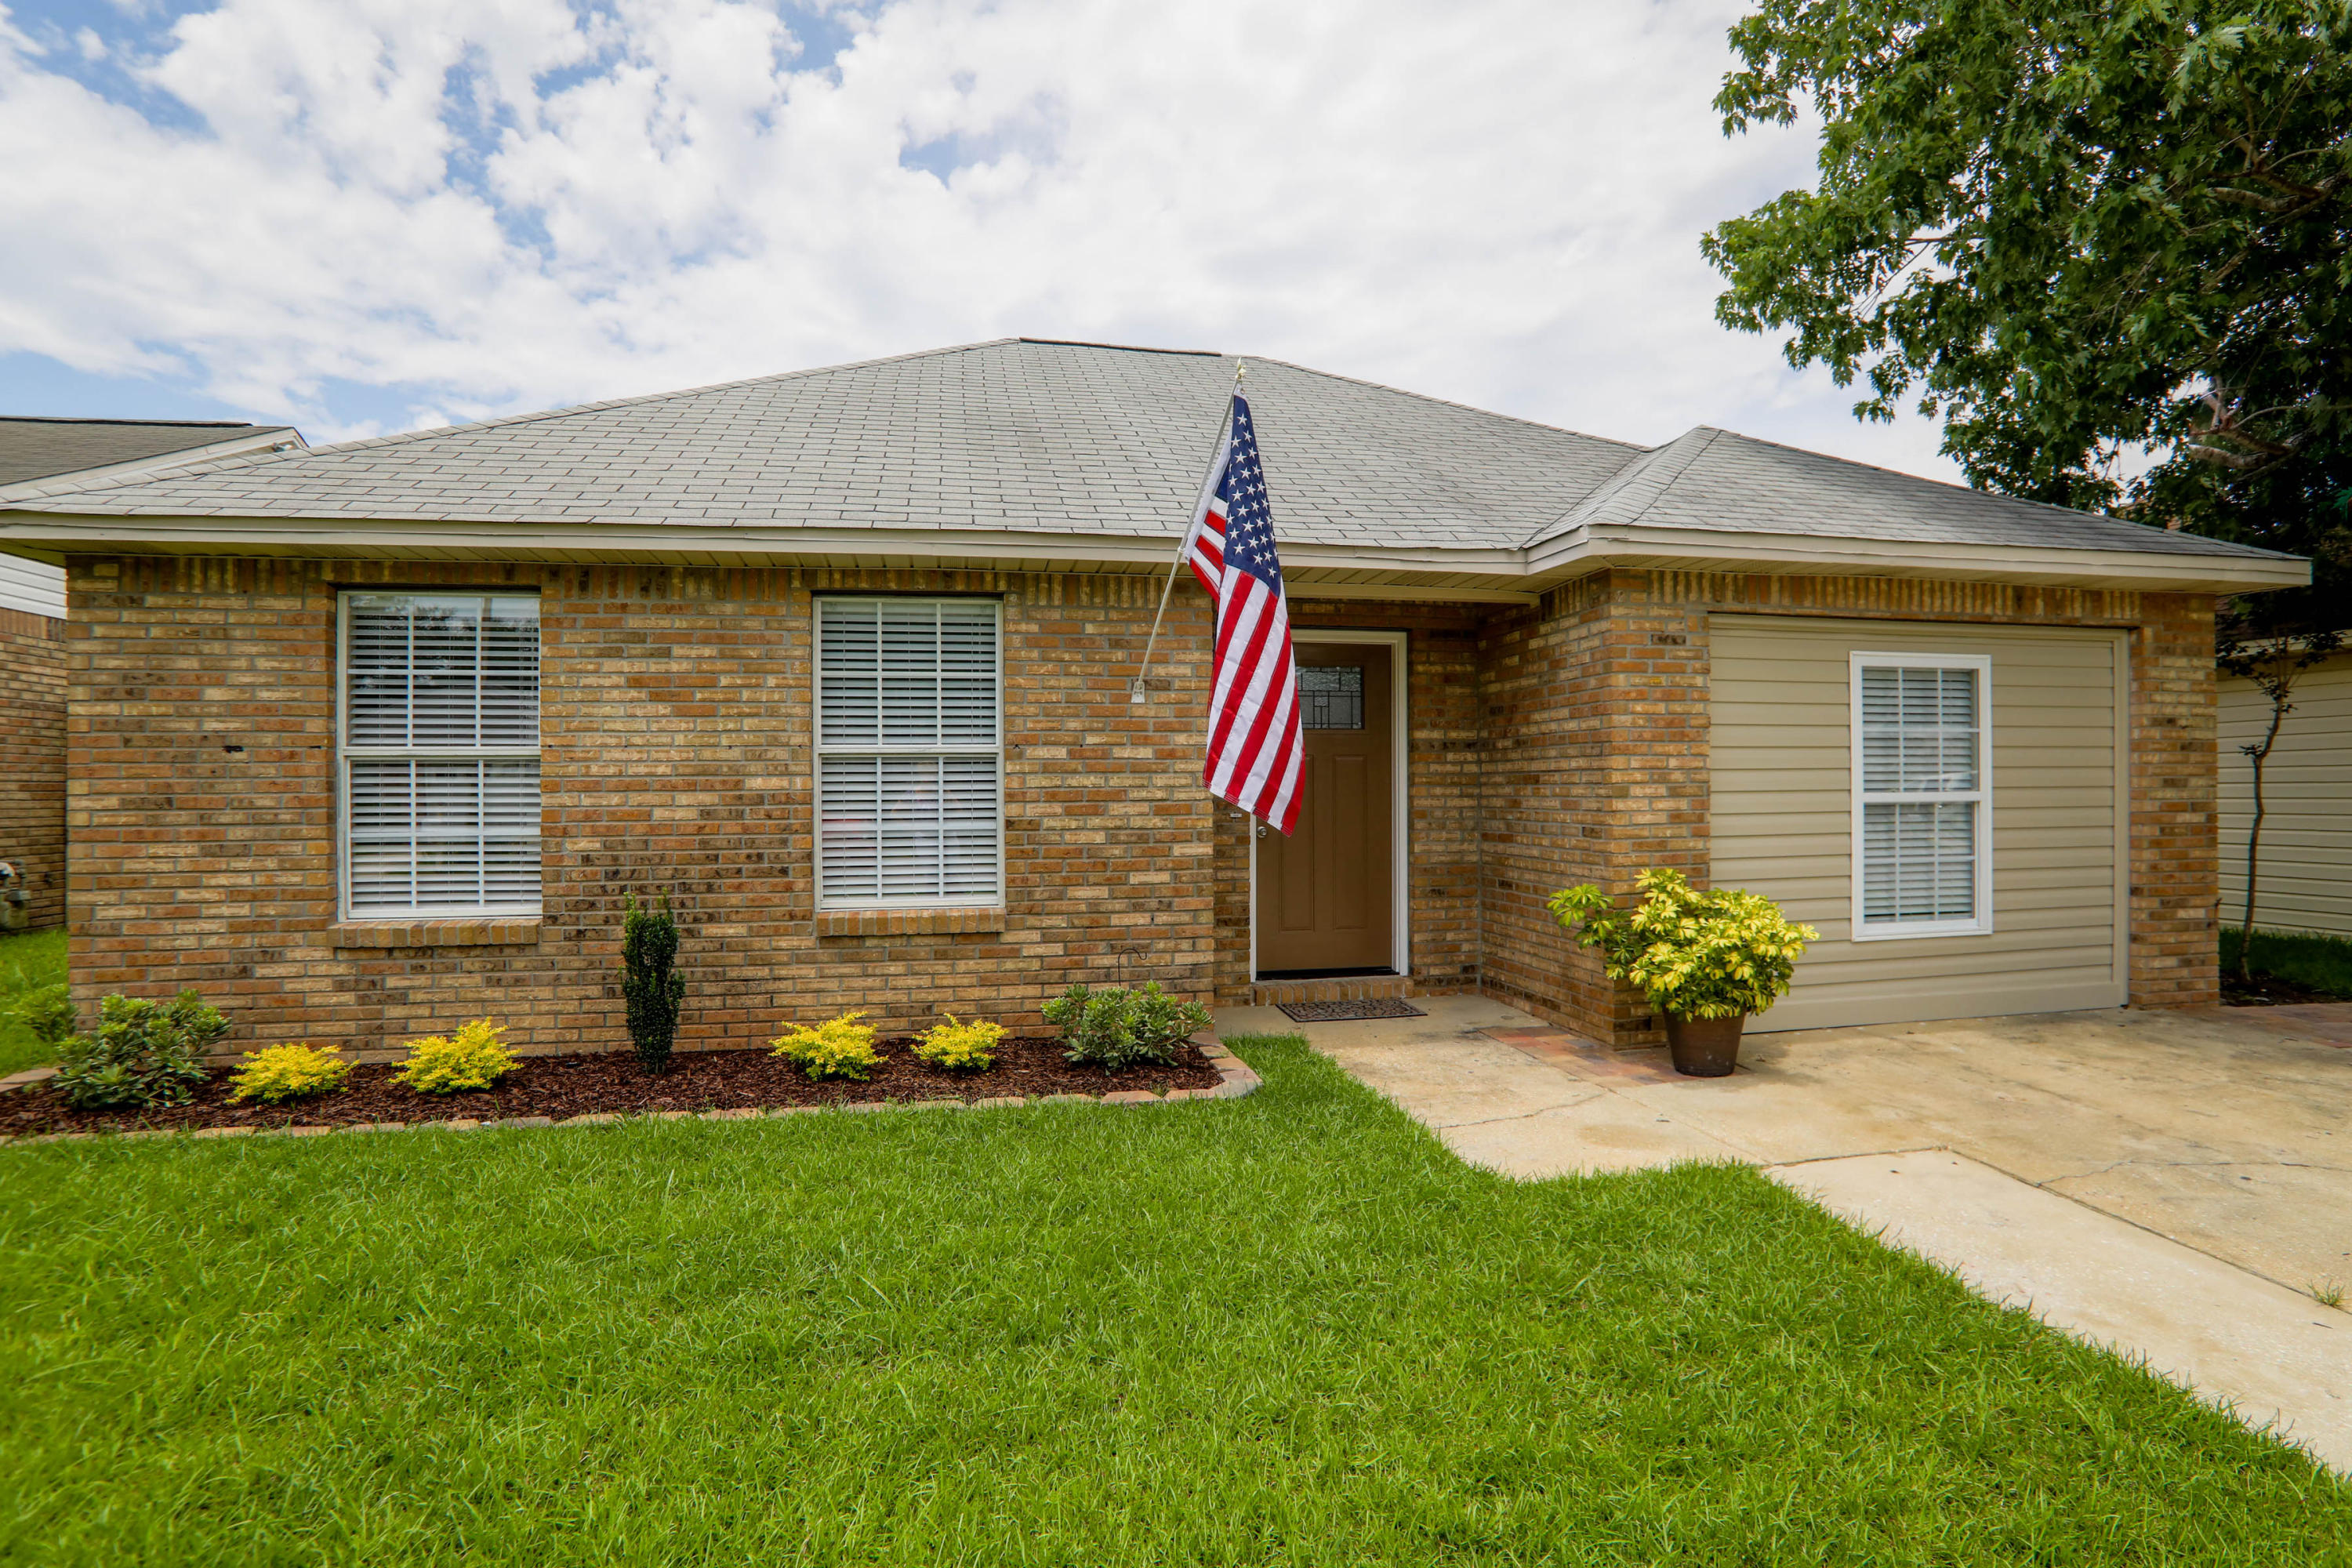 COMPLETELY remodeled, NEW A/C, NEW water heater, NEW cabinets, NEW counter tops, NEW kitchen, NEW bathroom, NEW flooring!! Located in the Heart of Destin, this 3 Bedroom 2 Bathroom has NO HOA!! Close to beaches, shopping, nightlife, and restaurants! Seller is offering $2,000 in closing assistance with preferred lender Element Funding.